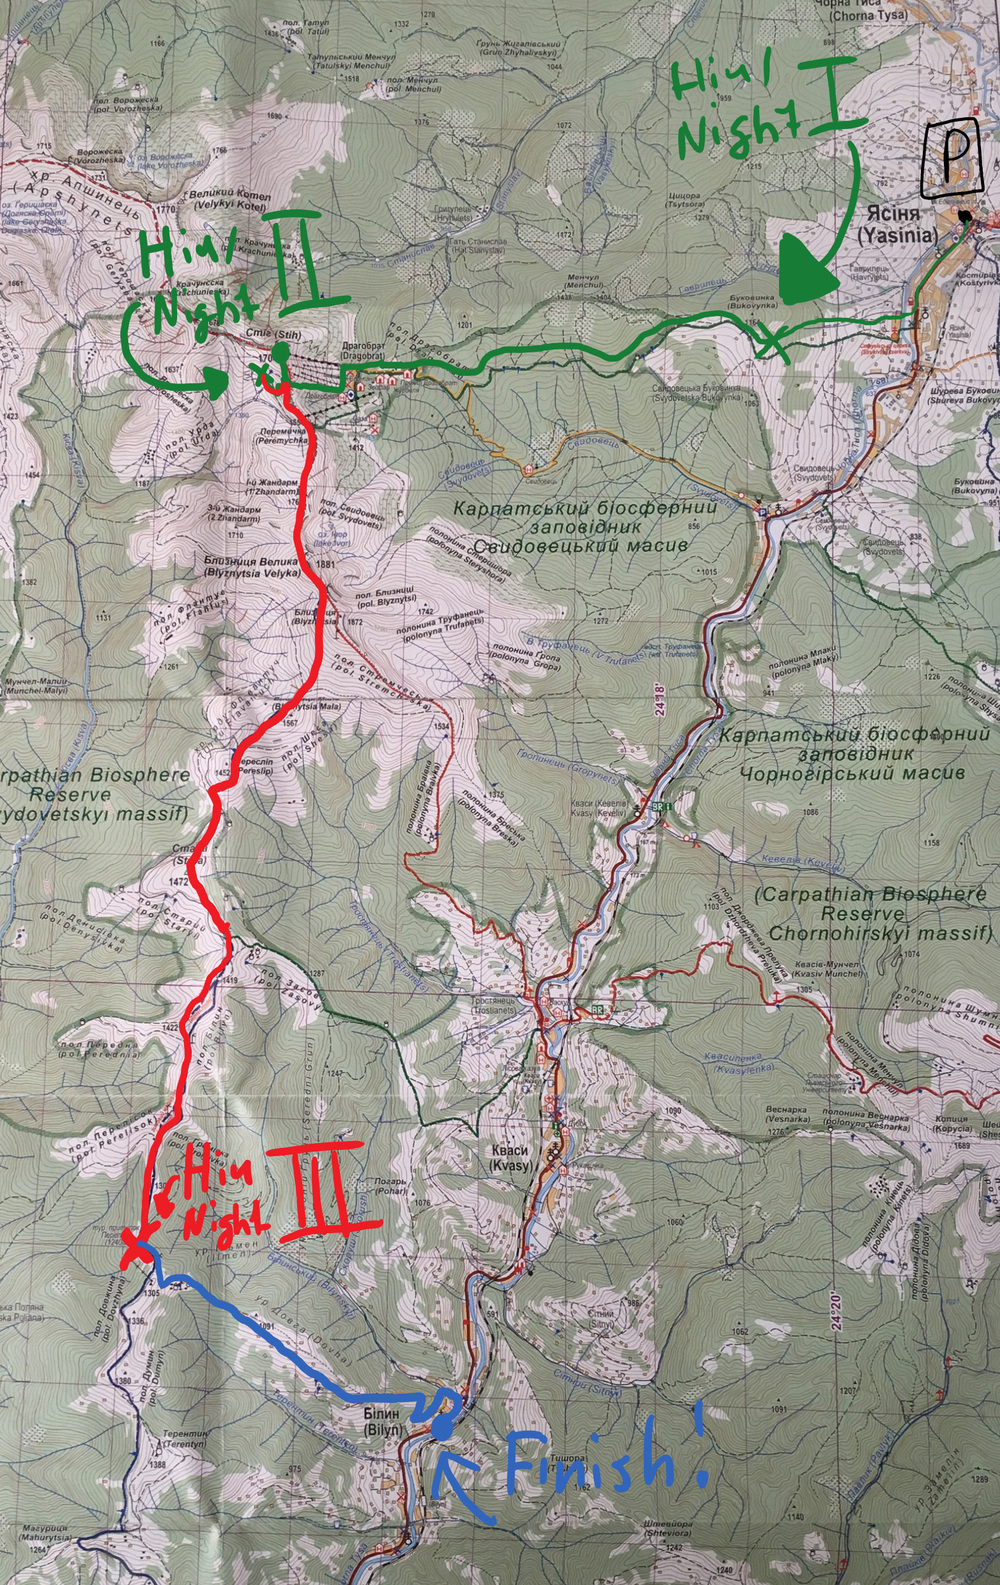 Route overview